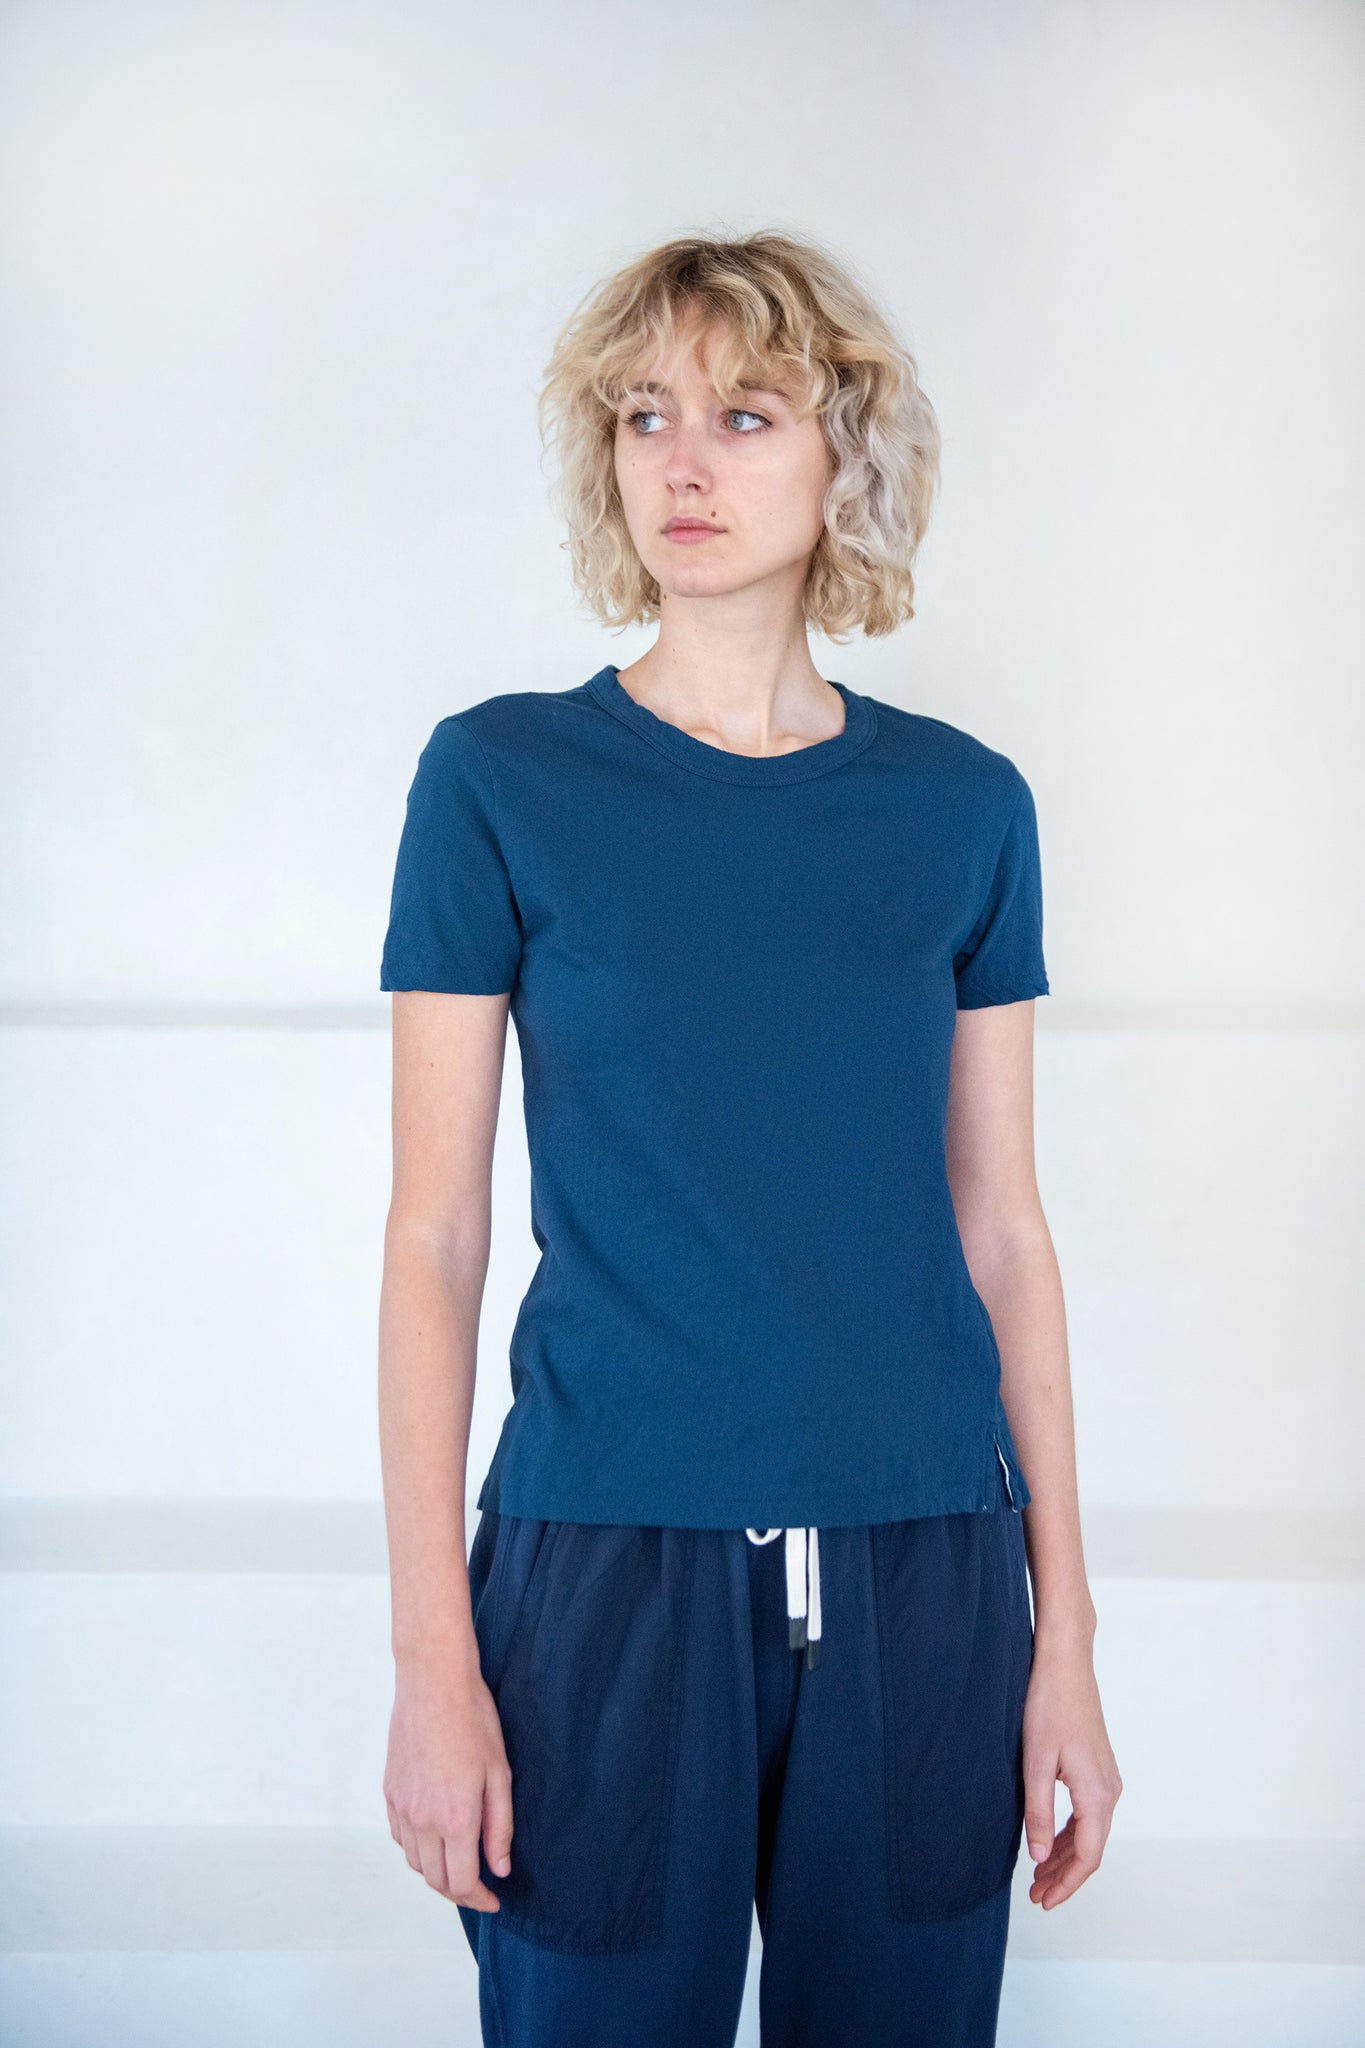 BASSIKE - slim fit t-shirt, indigo